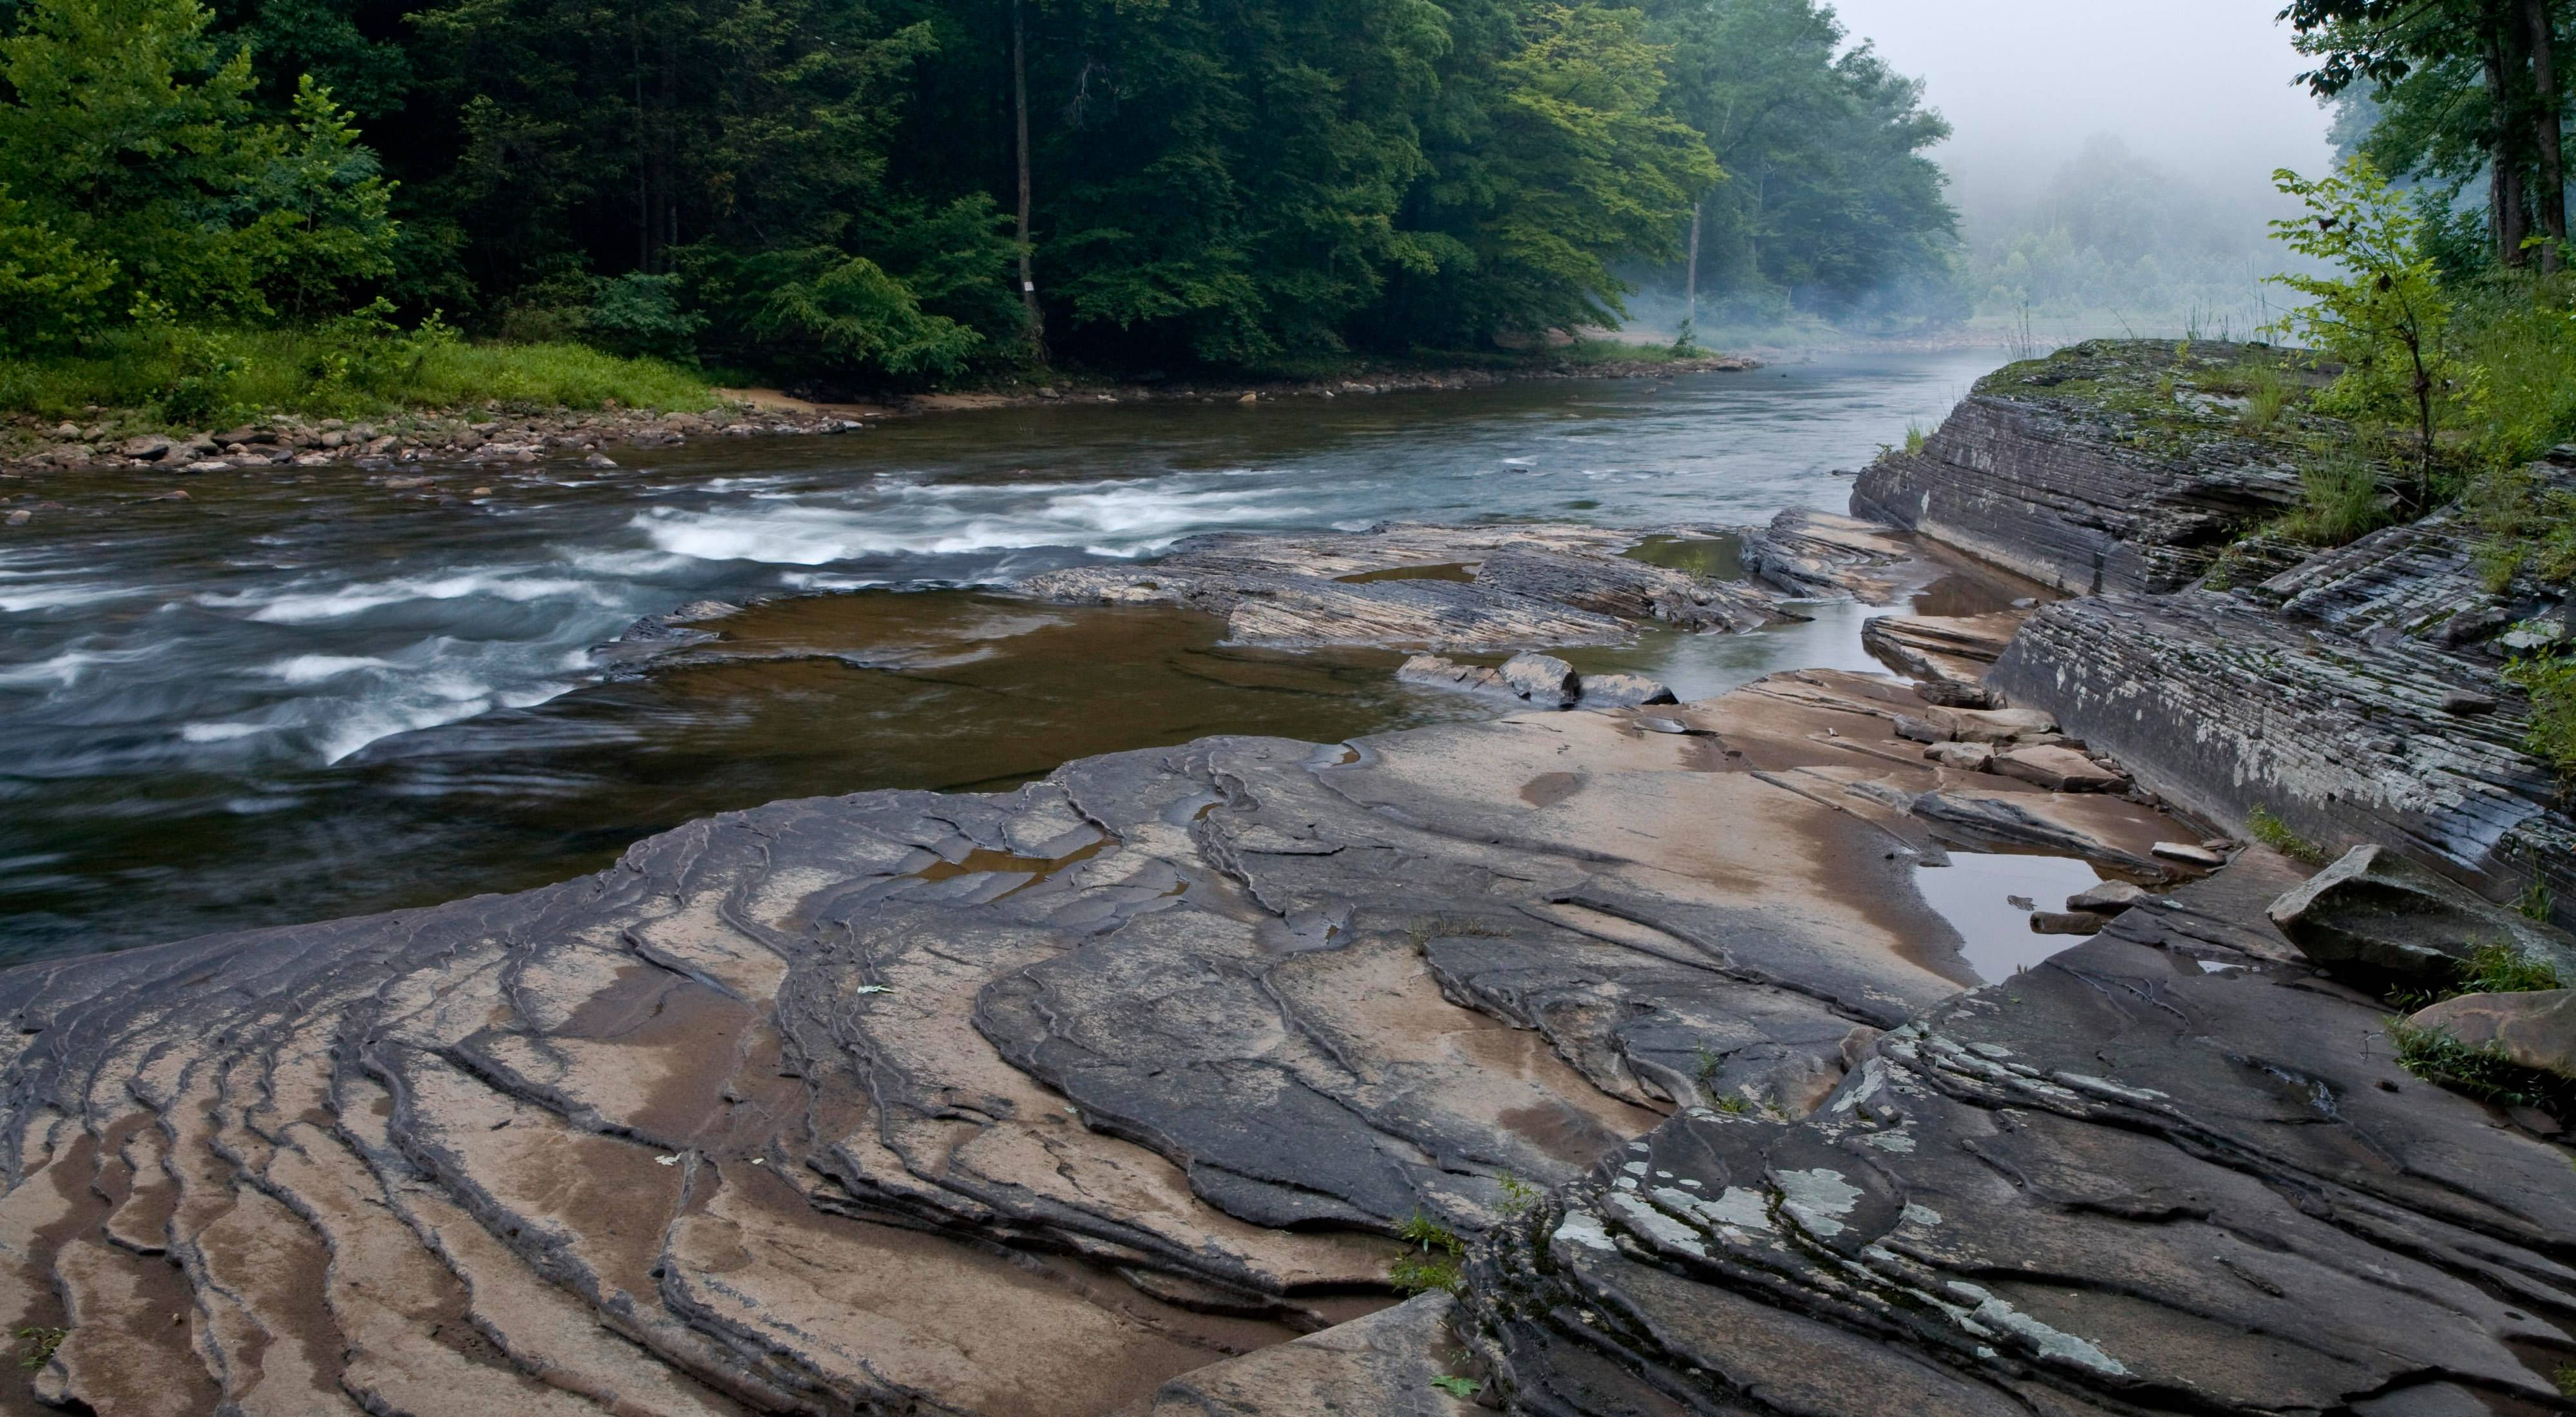 Morning mist over the Dry Fork River, a tributary of the Black Fork of the Cheat River in eastern West Virginia.